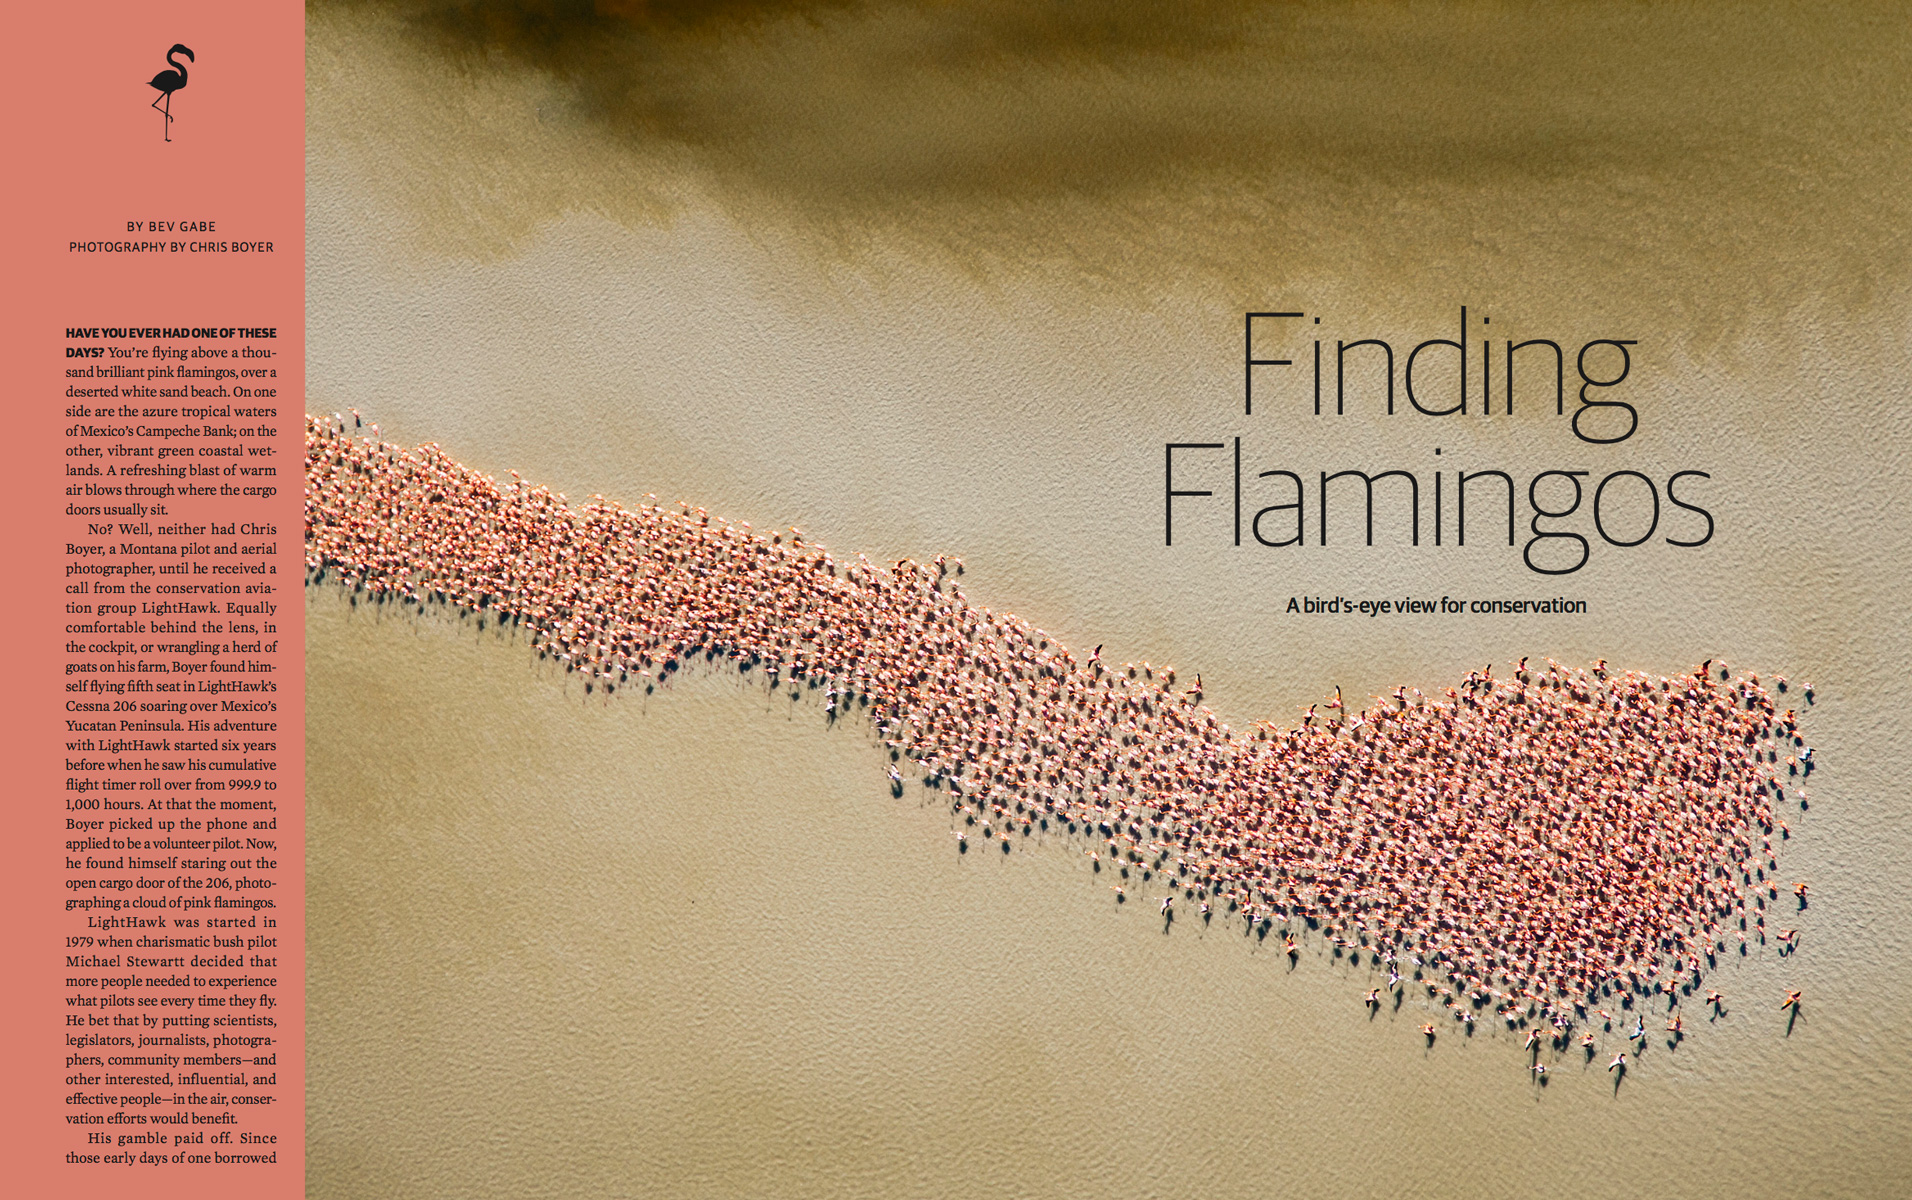 {quote}Finding Flamingos{quote} AOPA Magazine, March 2013